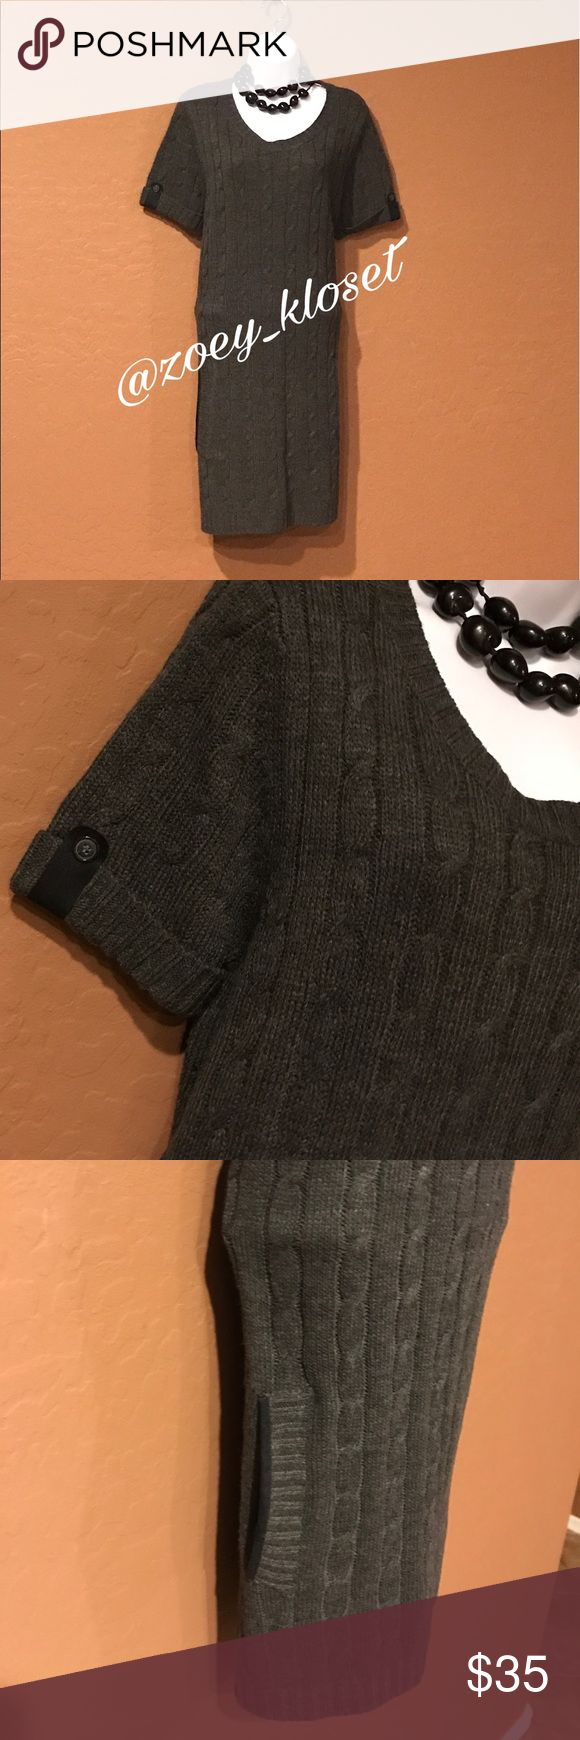 🆕Gray Ribbed Sweater Dress Never Worn, Short Fold Sleeve with Button, Stretch, 2 Low Front Pockets, Black Trim, Accessories not included. I ❤️ Ronson Dresses